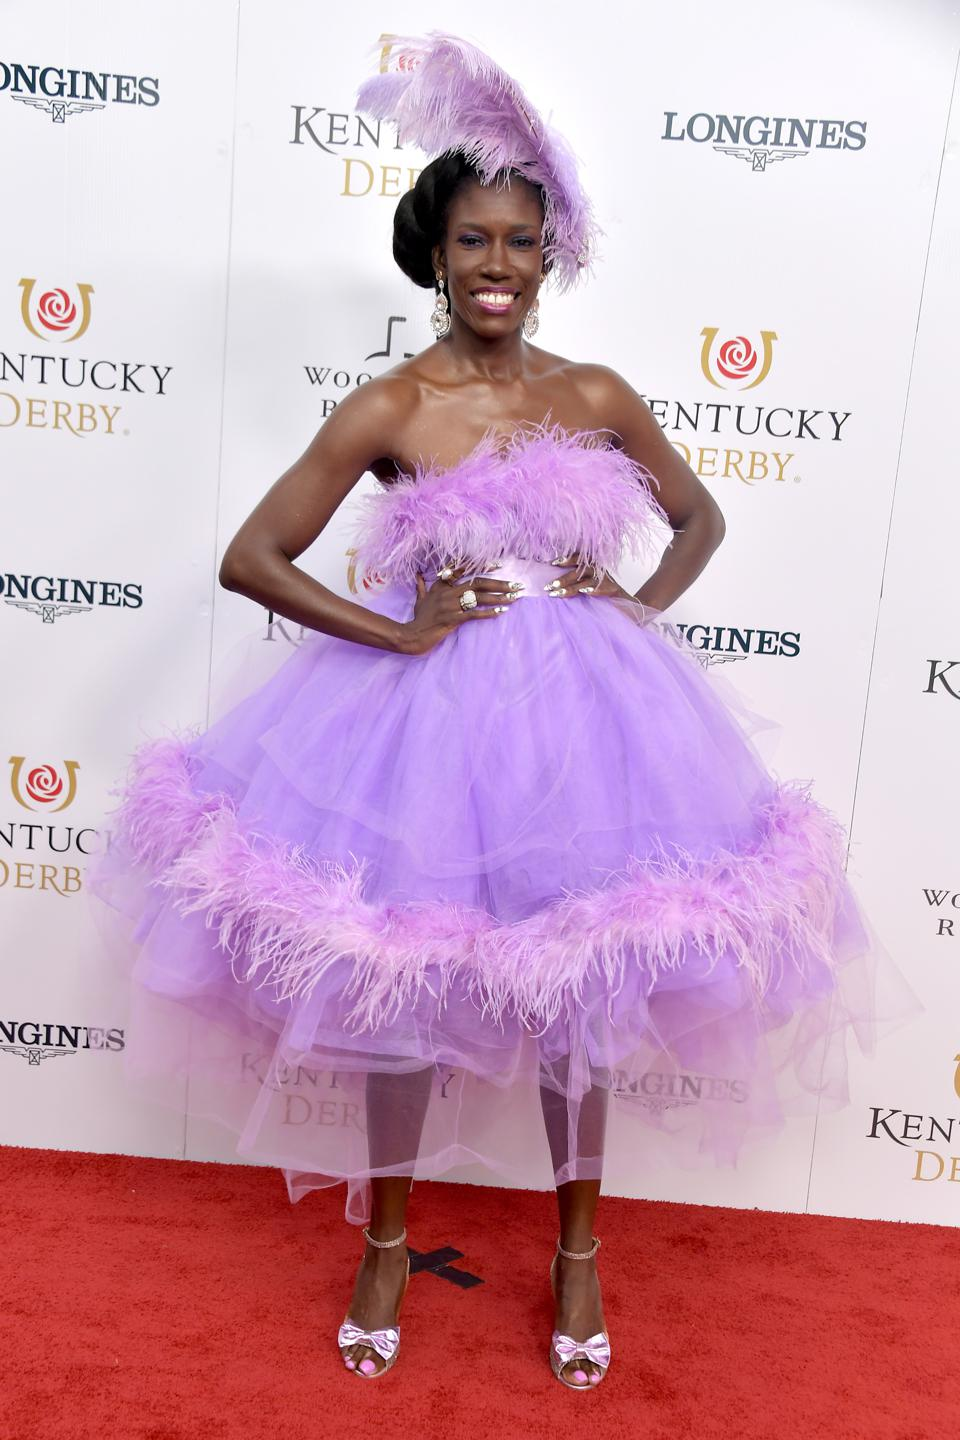 Kentucky Derby Bozoma Saint John